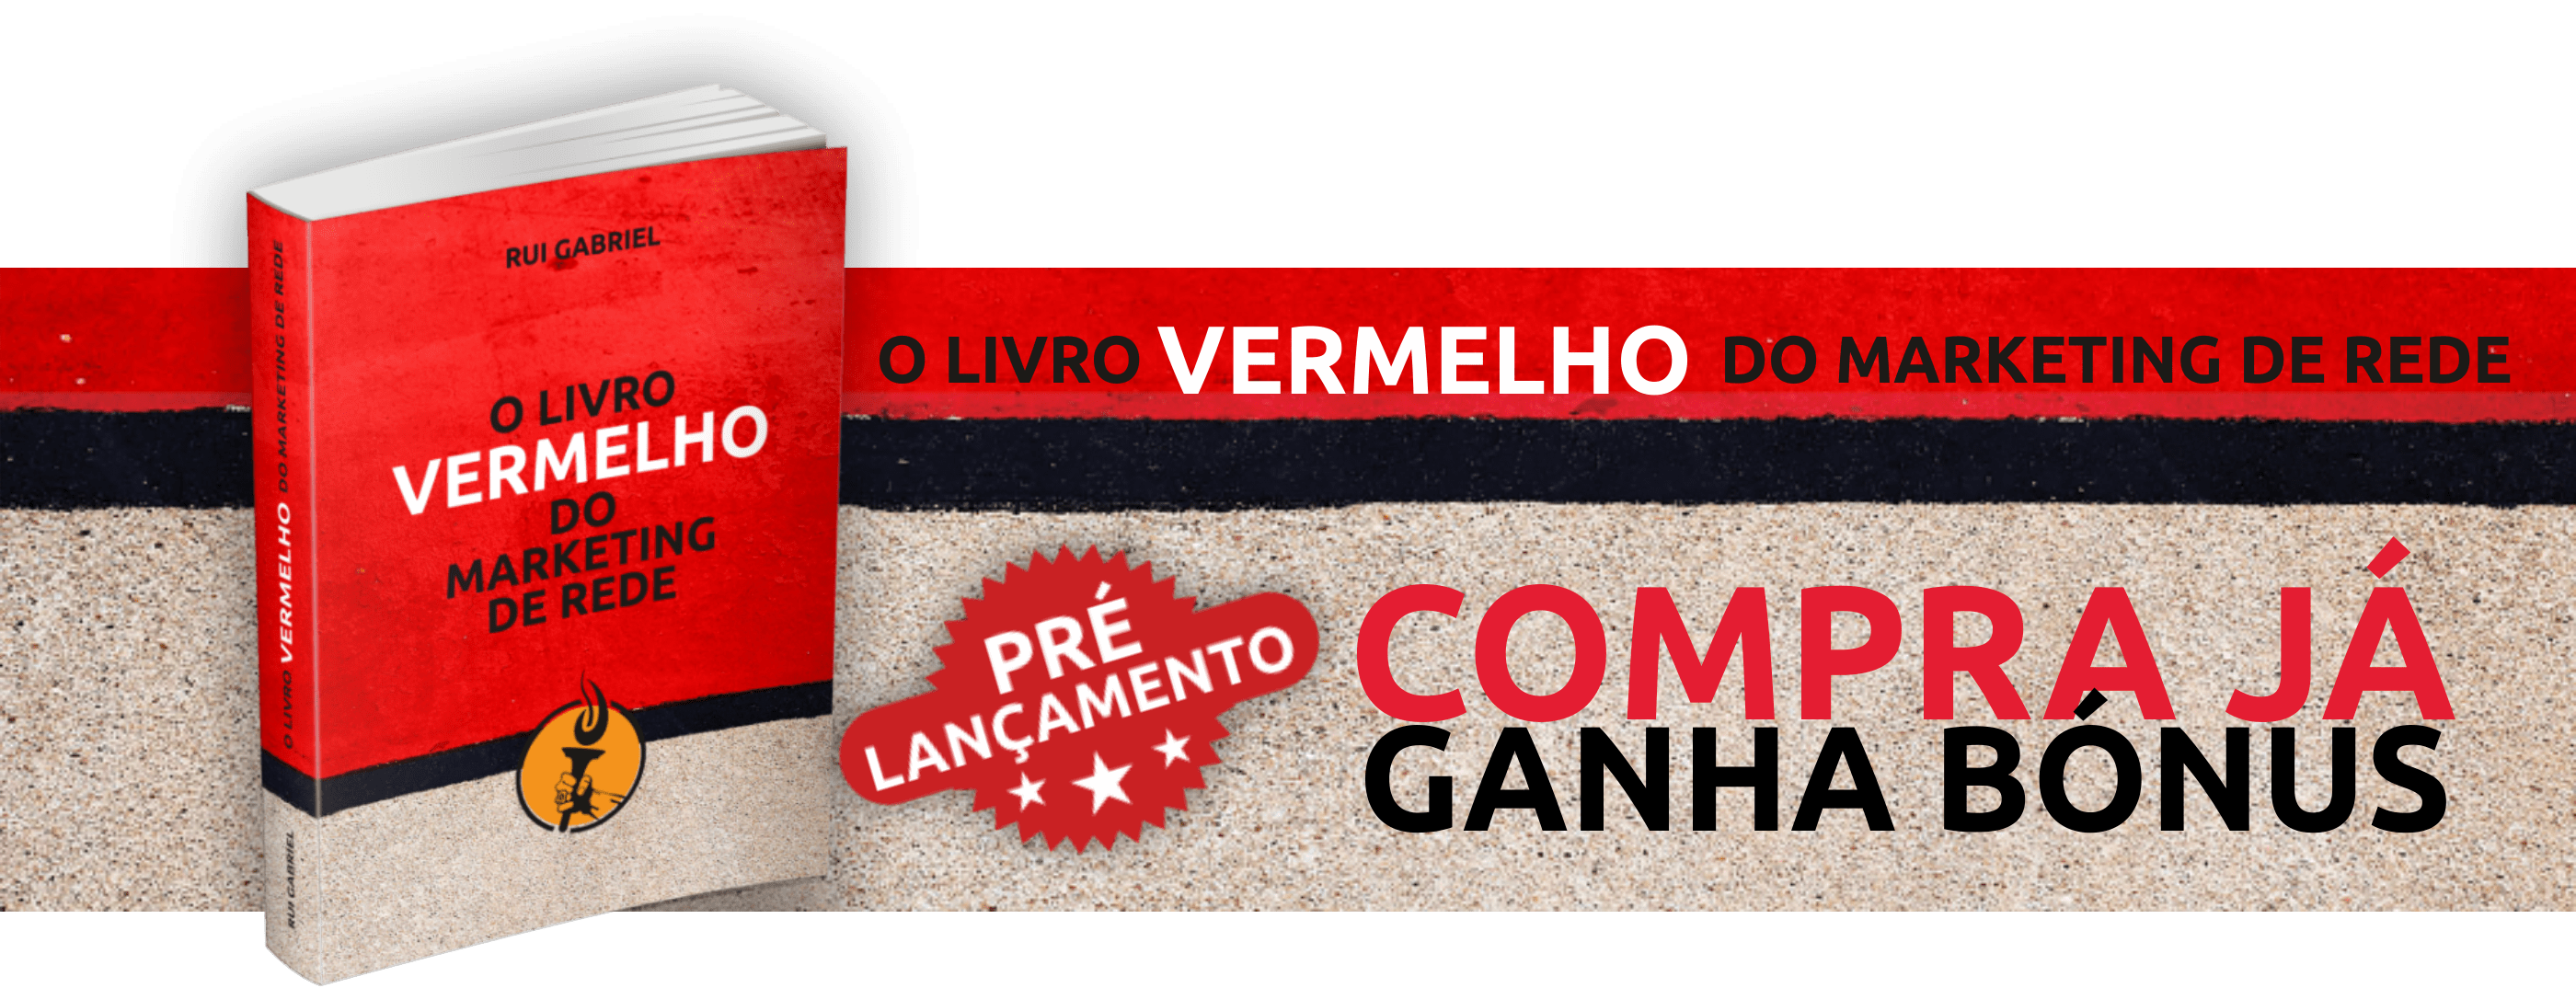 saber mais sobre marketing de rede livro vermelho do marketing de rede